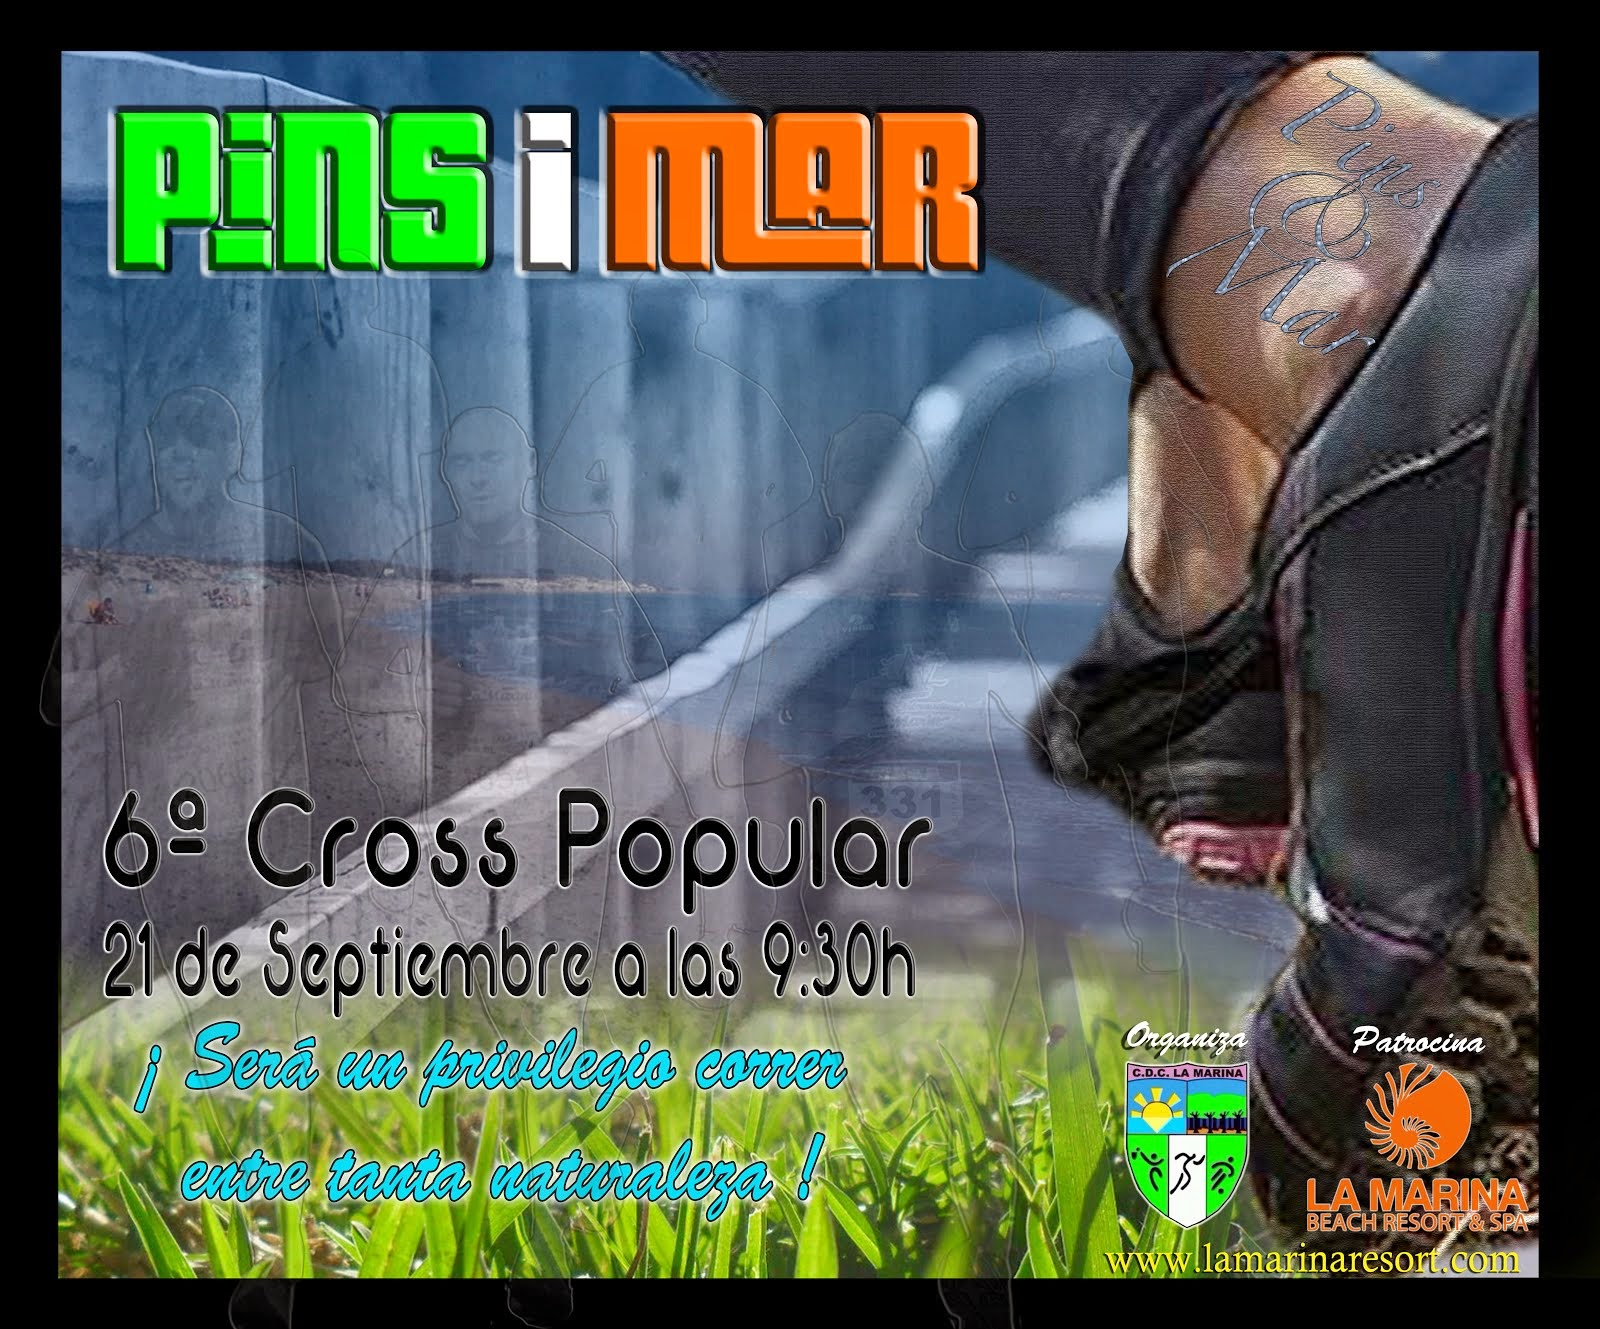 6º Cross Popular Pins i Mar 2014